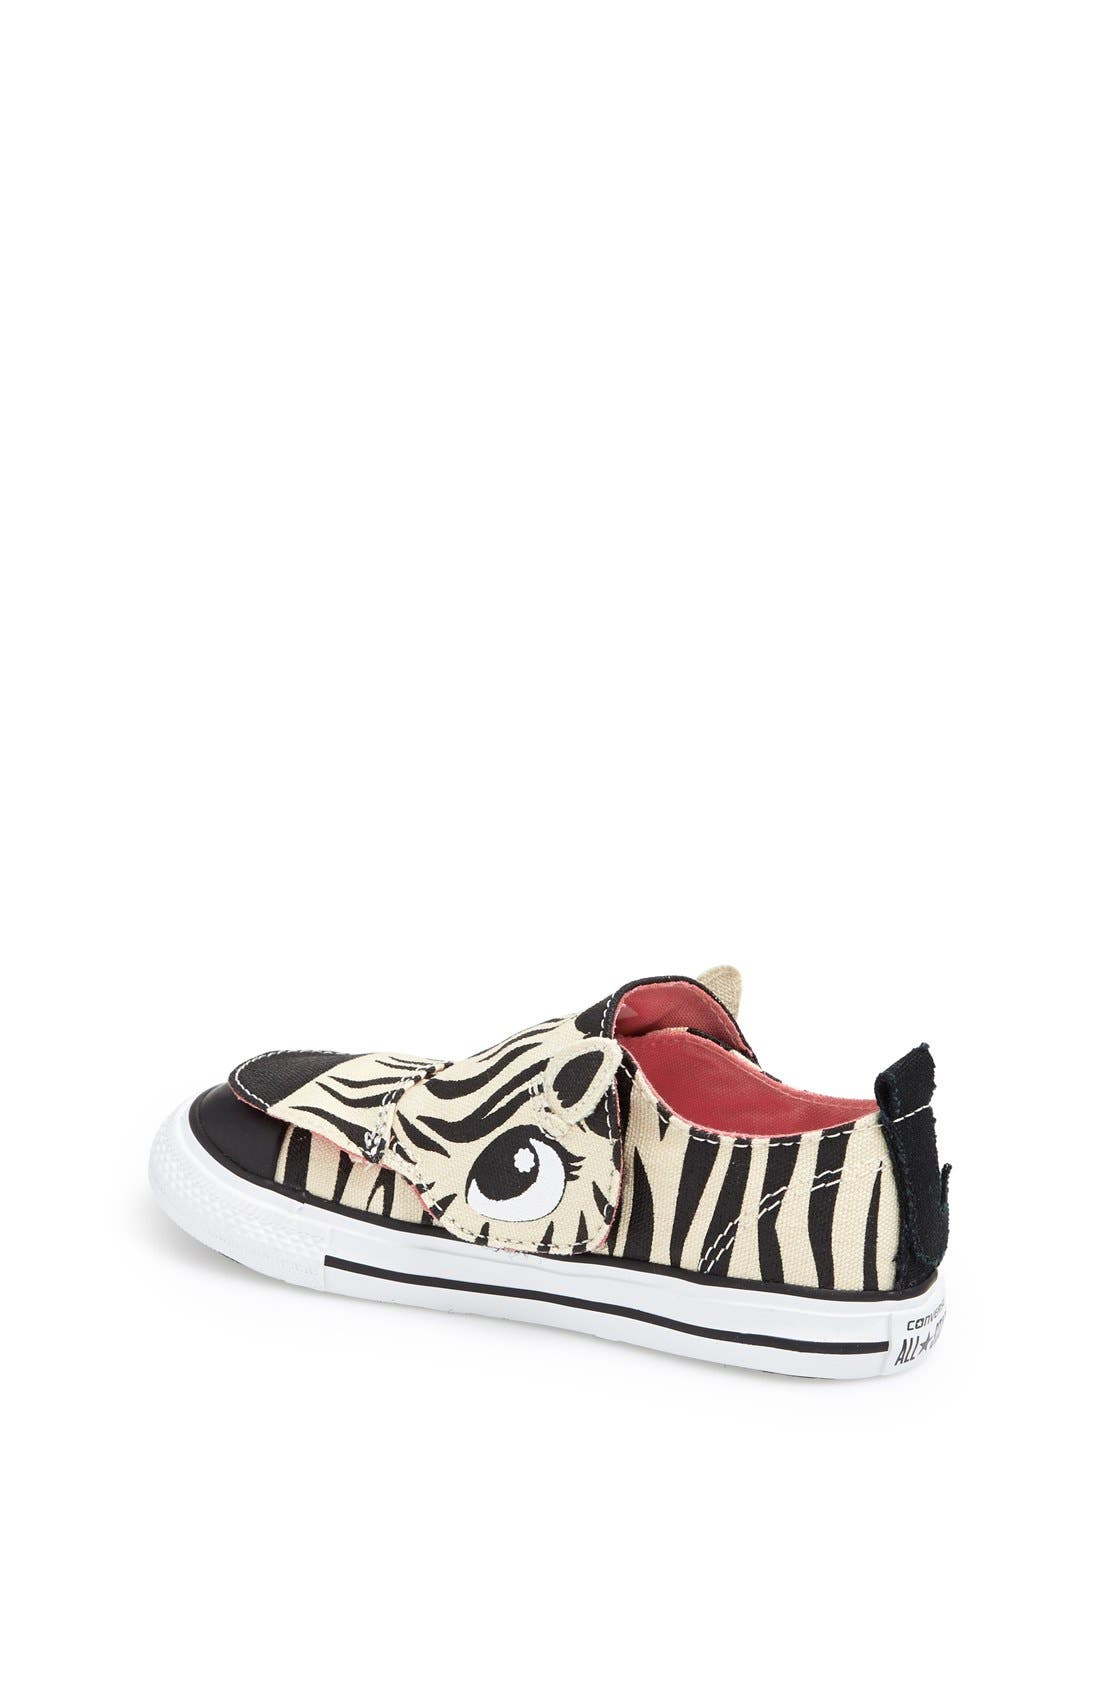 Alternate Image 2  - Converse 'No Problem' Zebra Face Sneaker (Baby, Walker & Toddler)